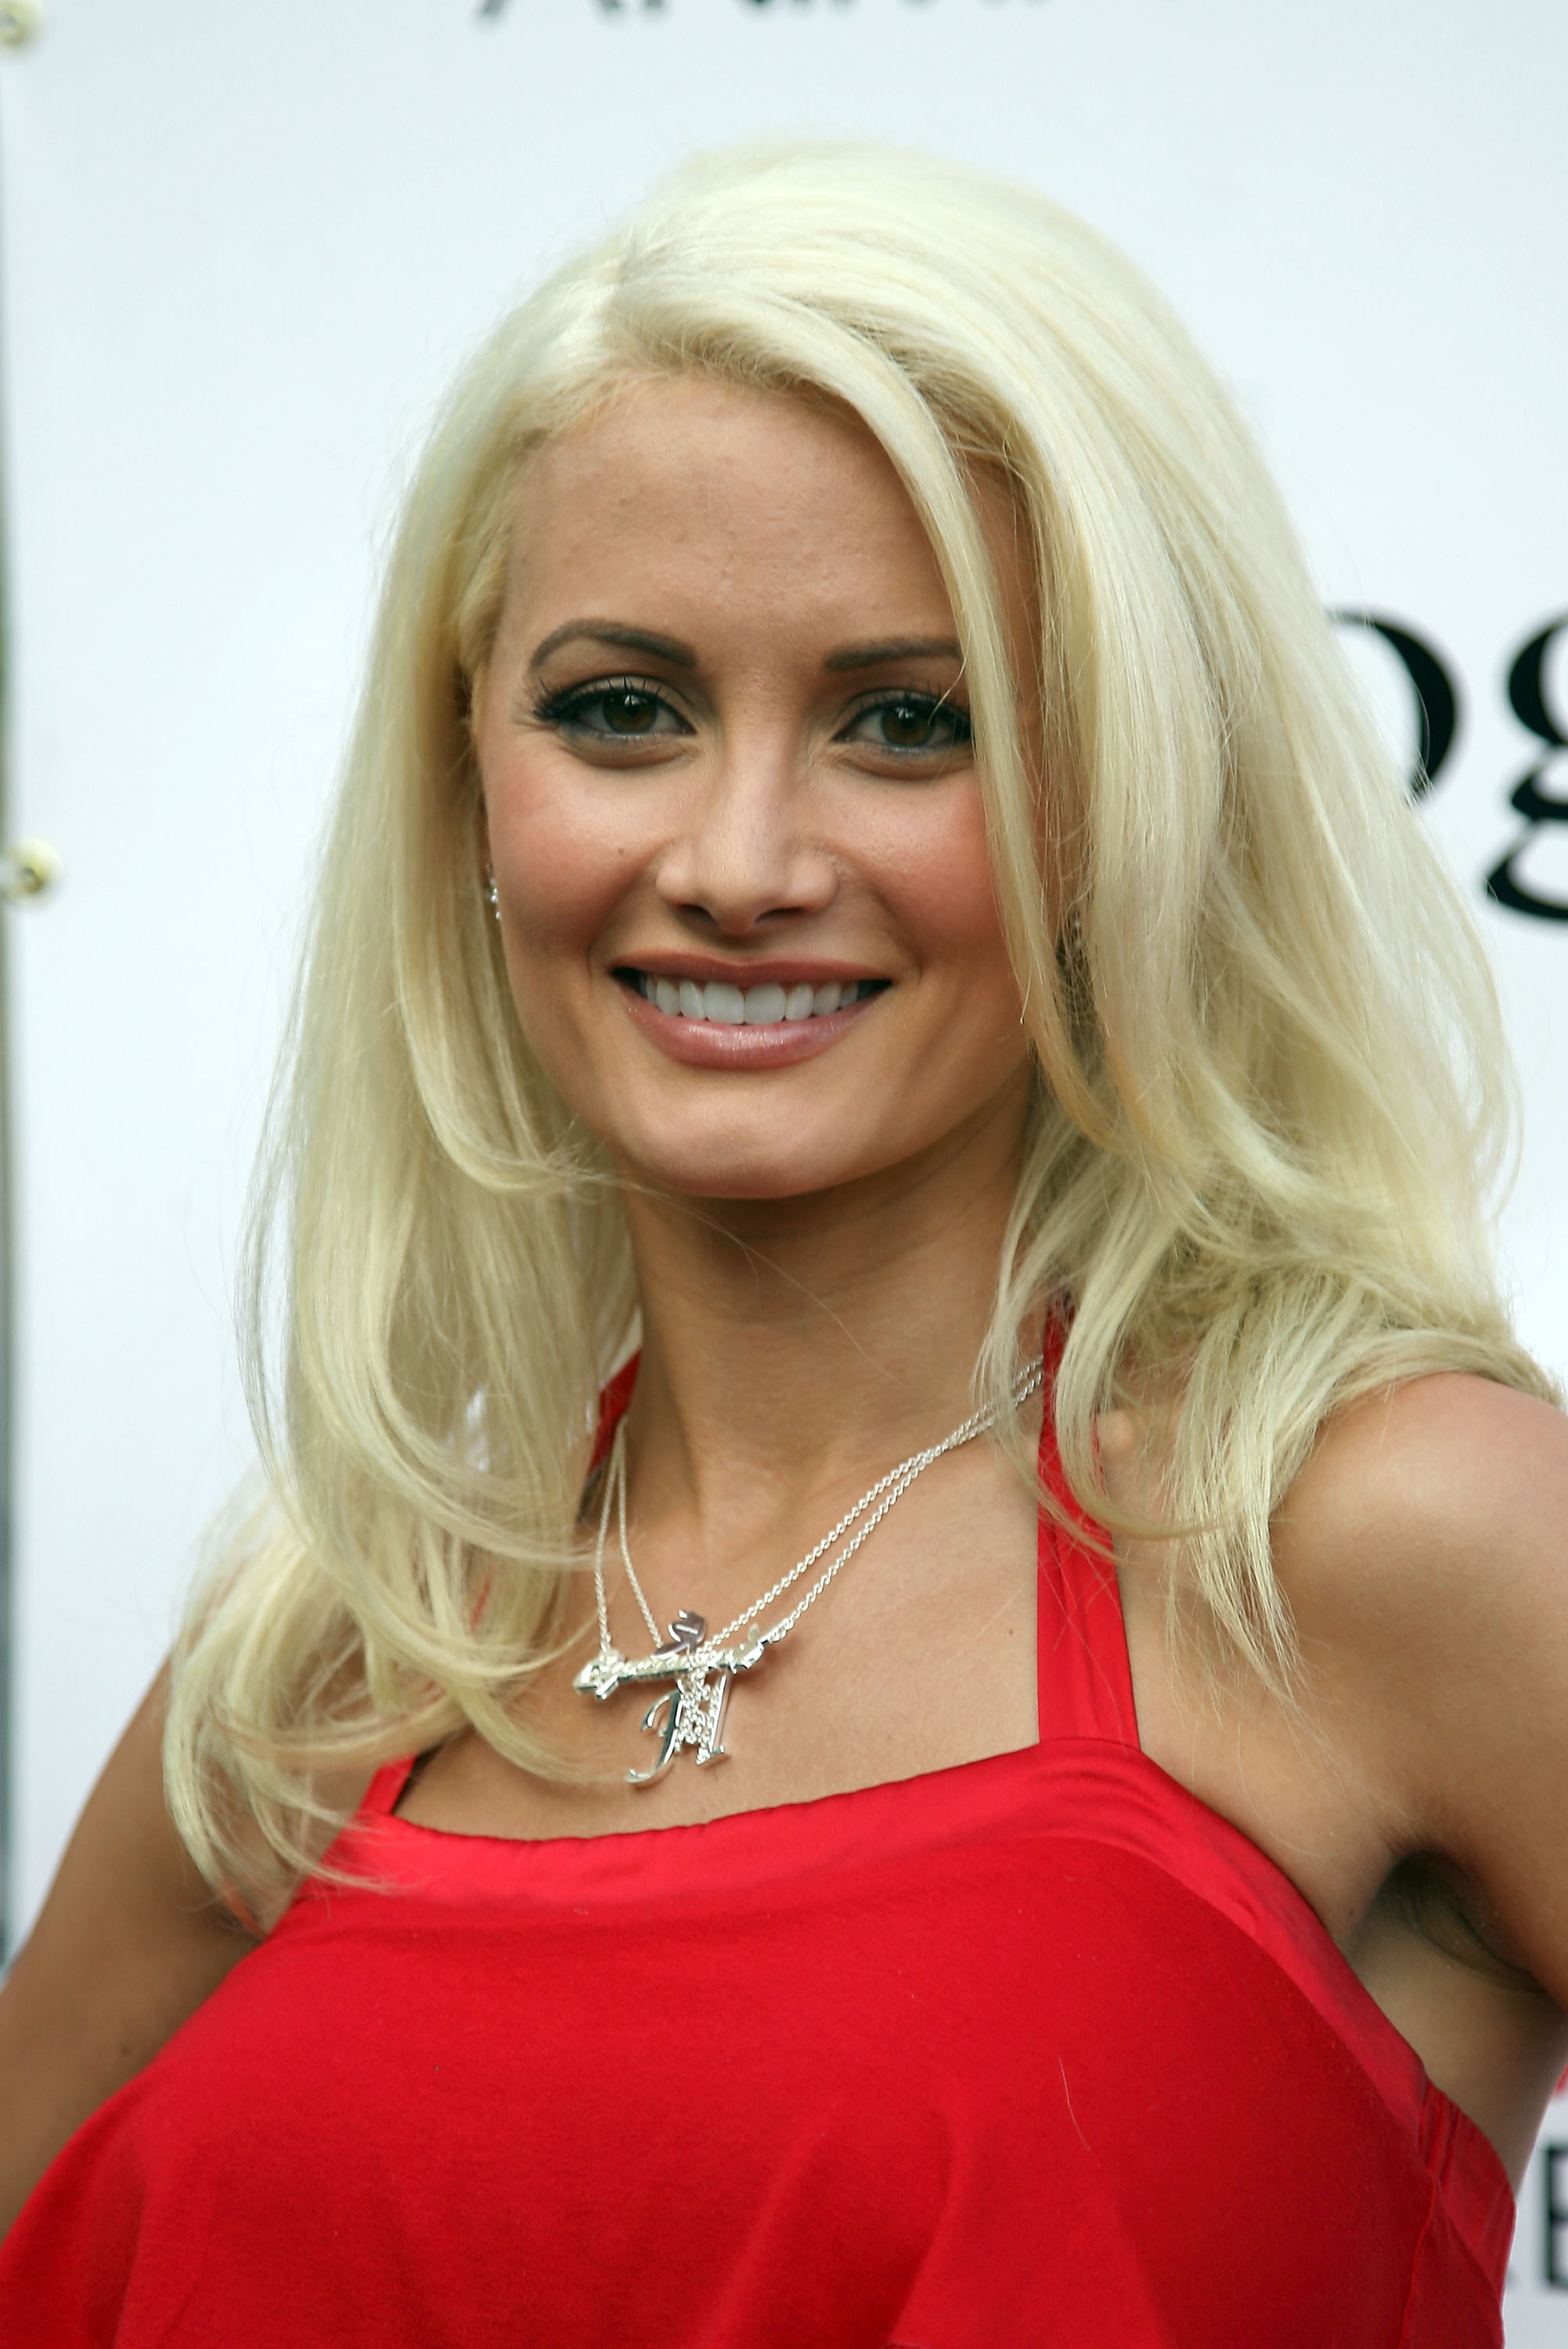 http://allcelebpics.files.wordpress.com/2008/07/holly-madison1.jpg